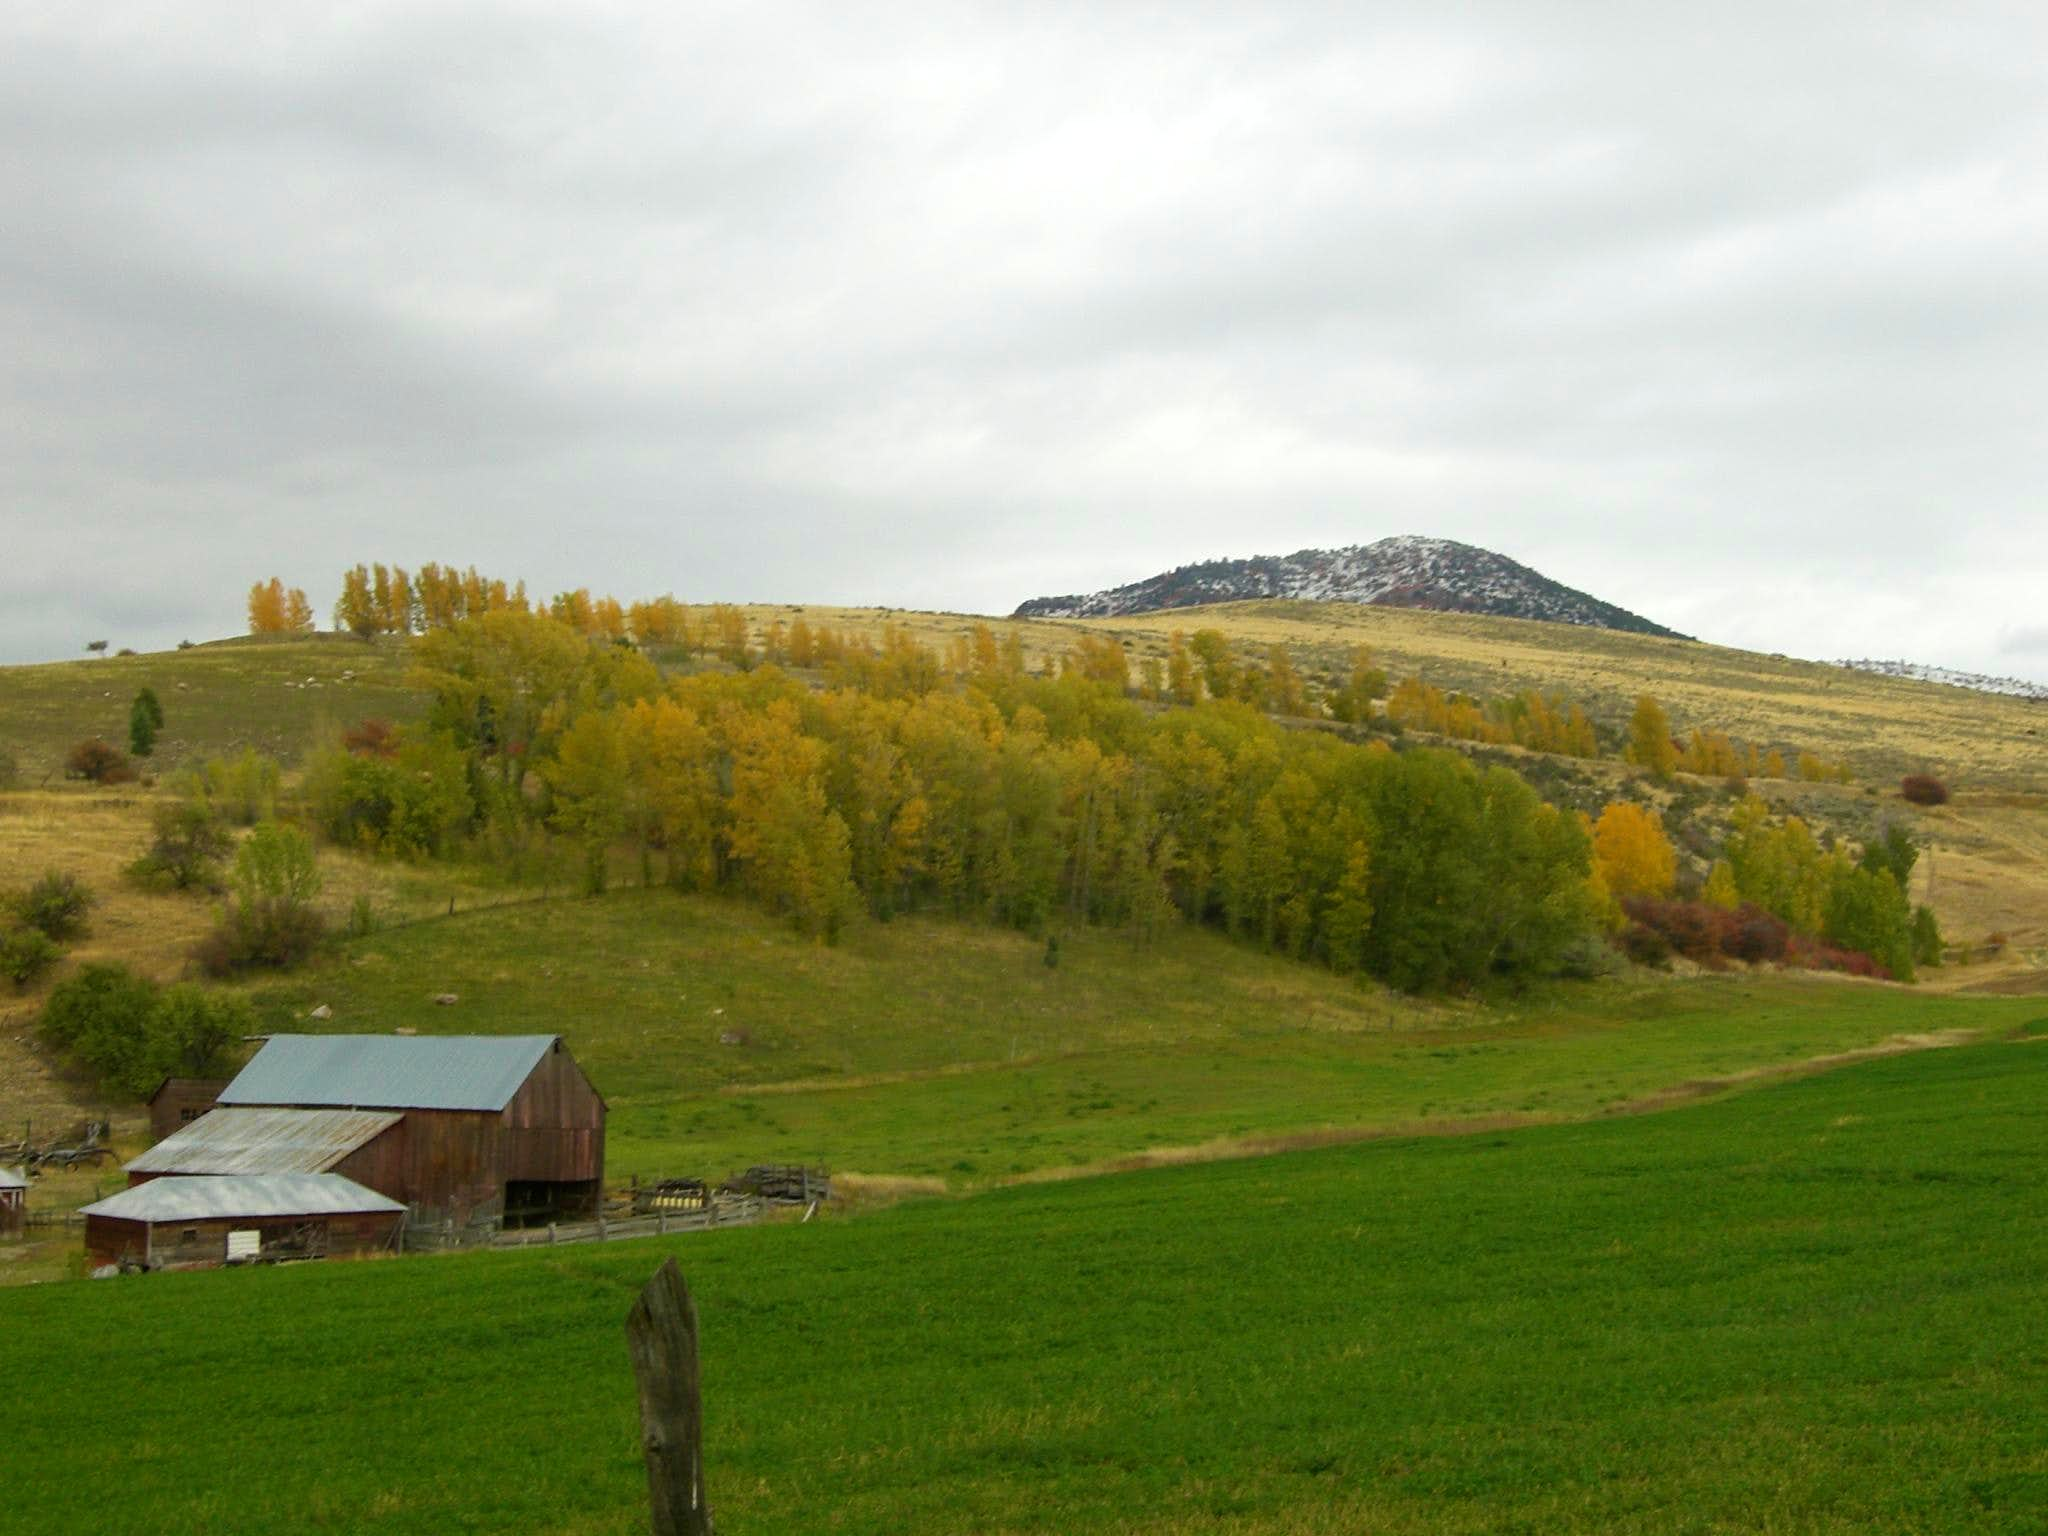 Mountain Farms and Barns